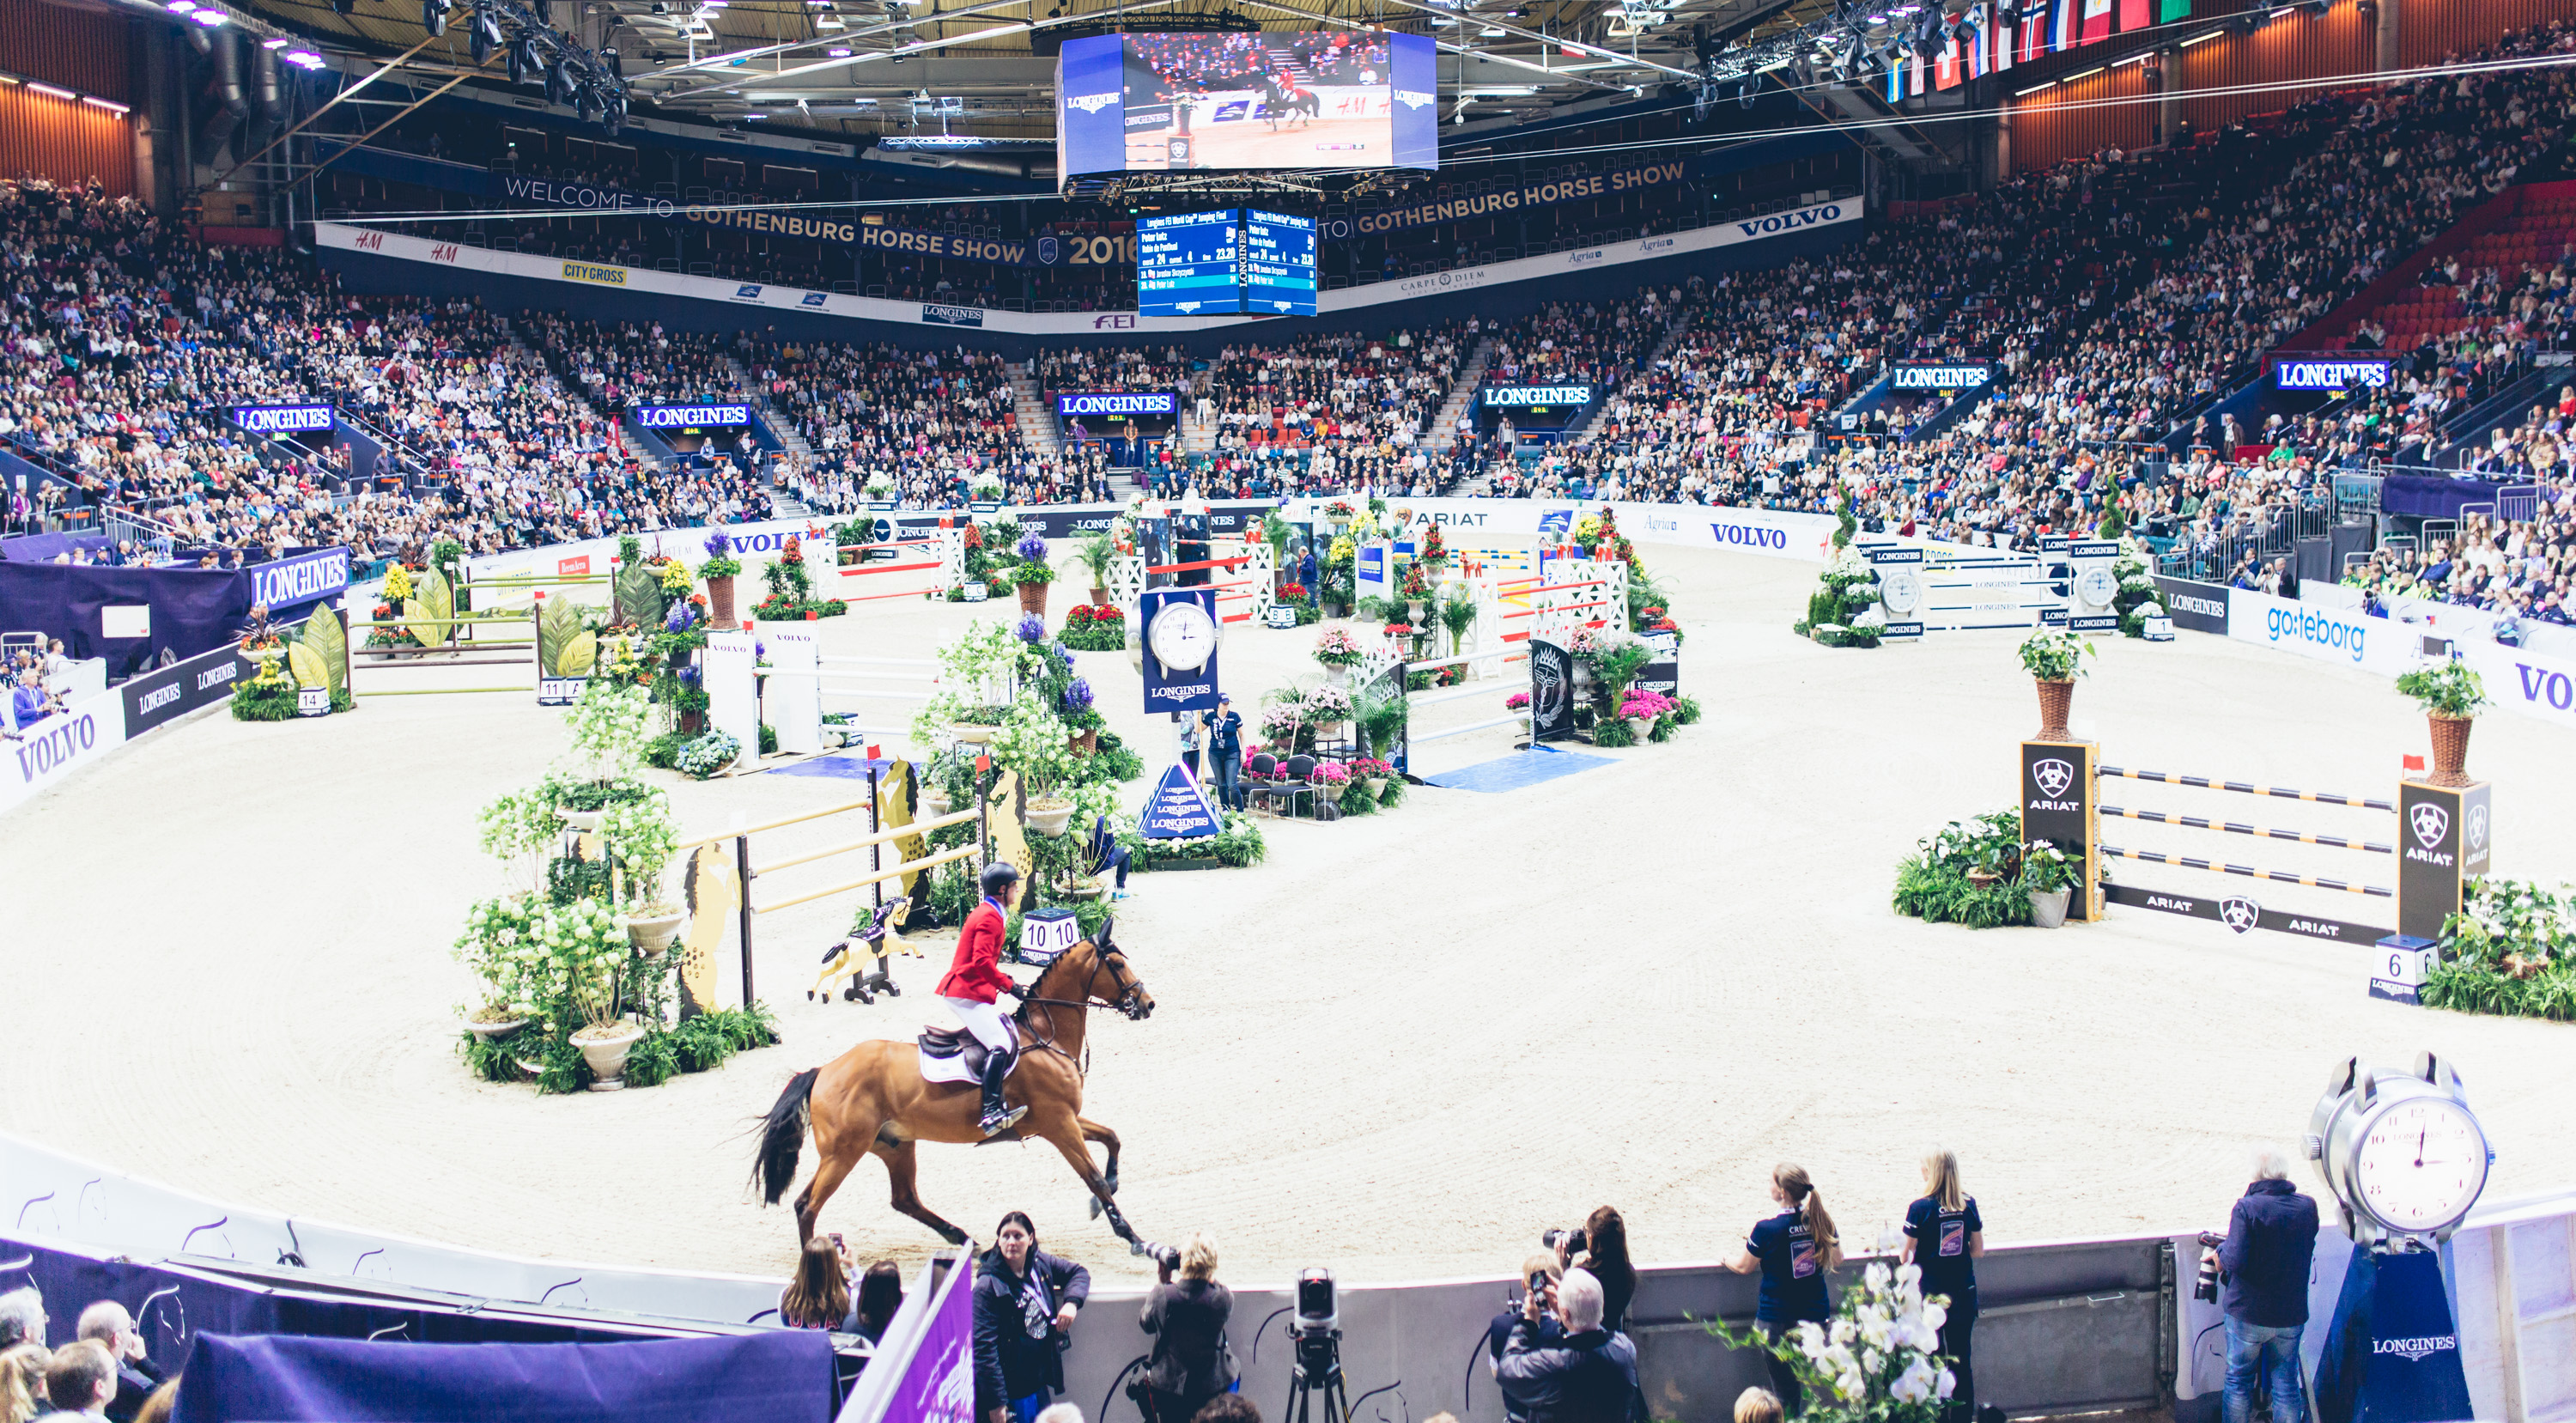 Andrea_Berlin_World_Cup_Final_Gothenburg_Longines-2179